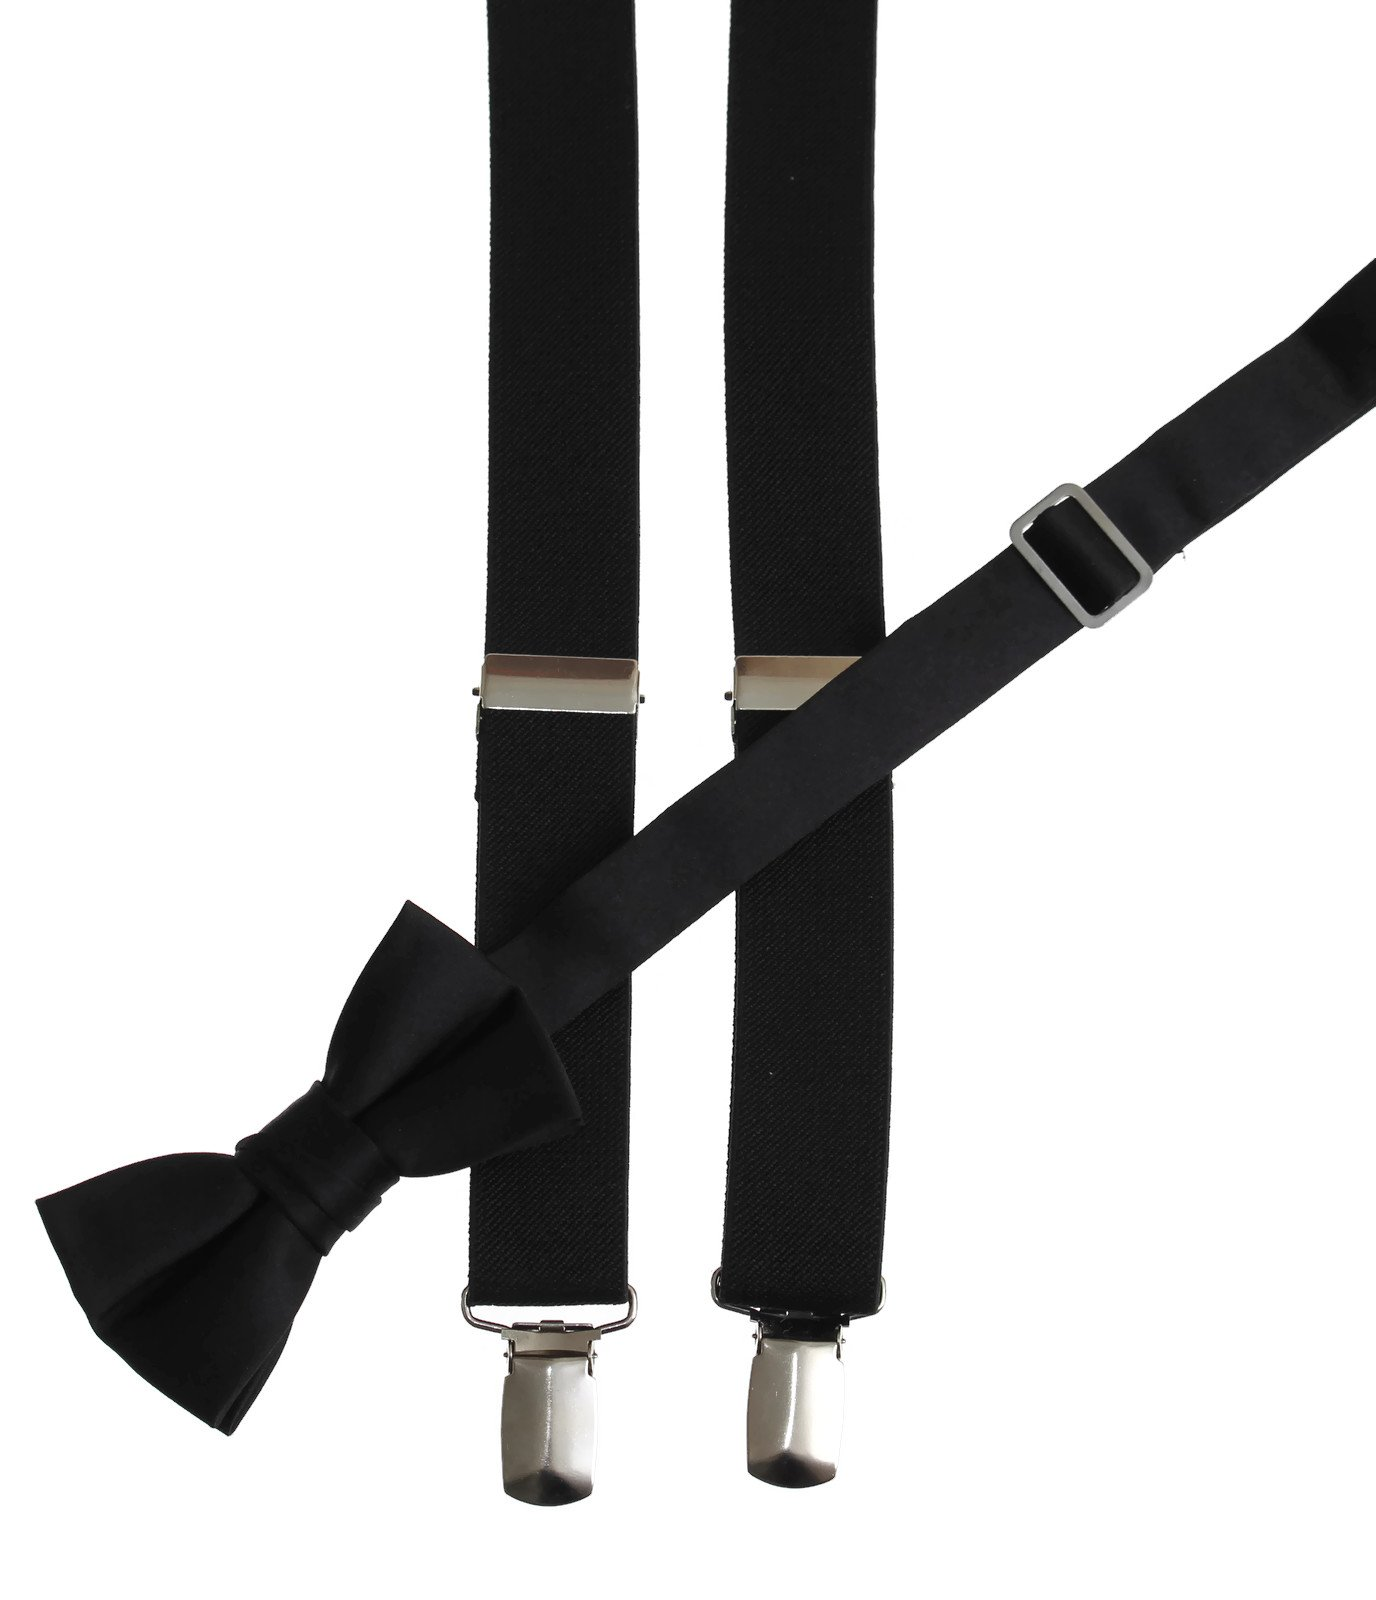 Matching Black Adjustable Suspender and Bow Tie Sets, Kids to Adults Sizing (30'' Boys Ages 6-11)